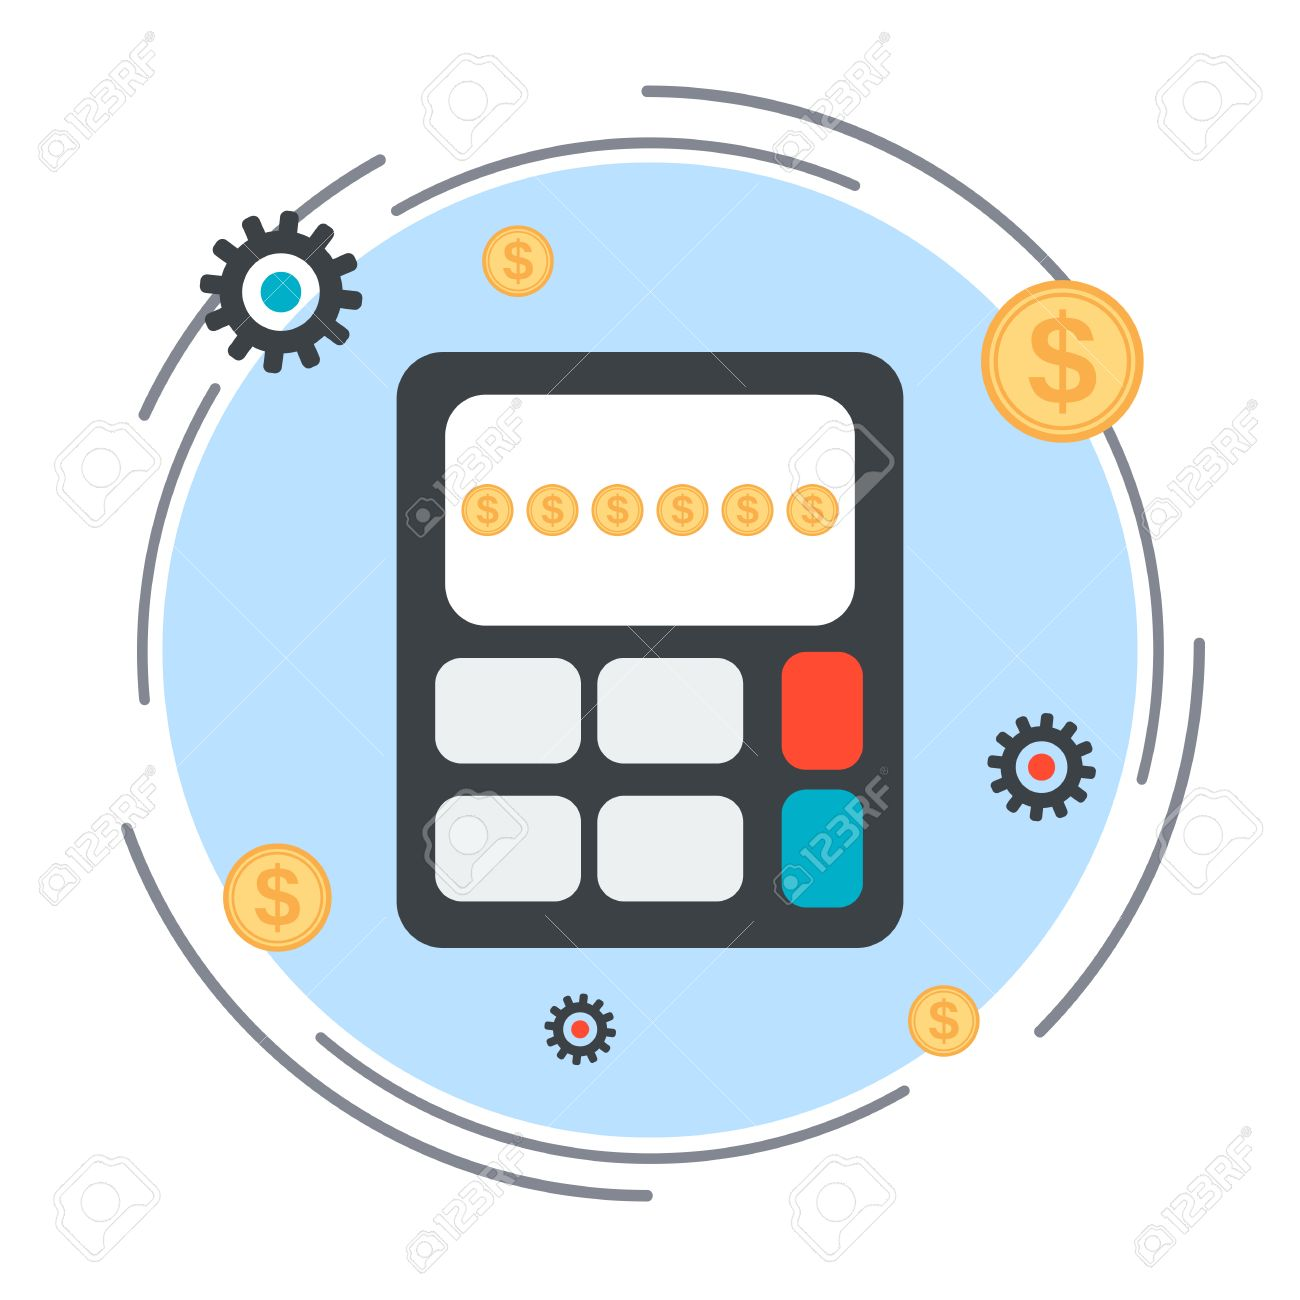 Budget Calculation, Financial Statistics, Profit Counting Vector.